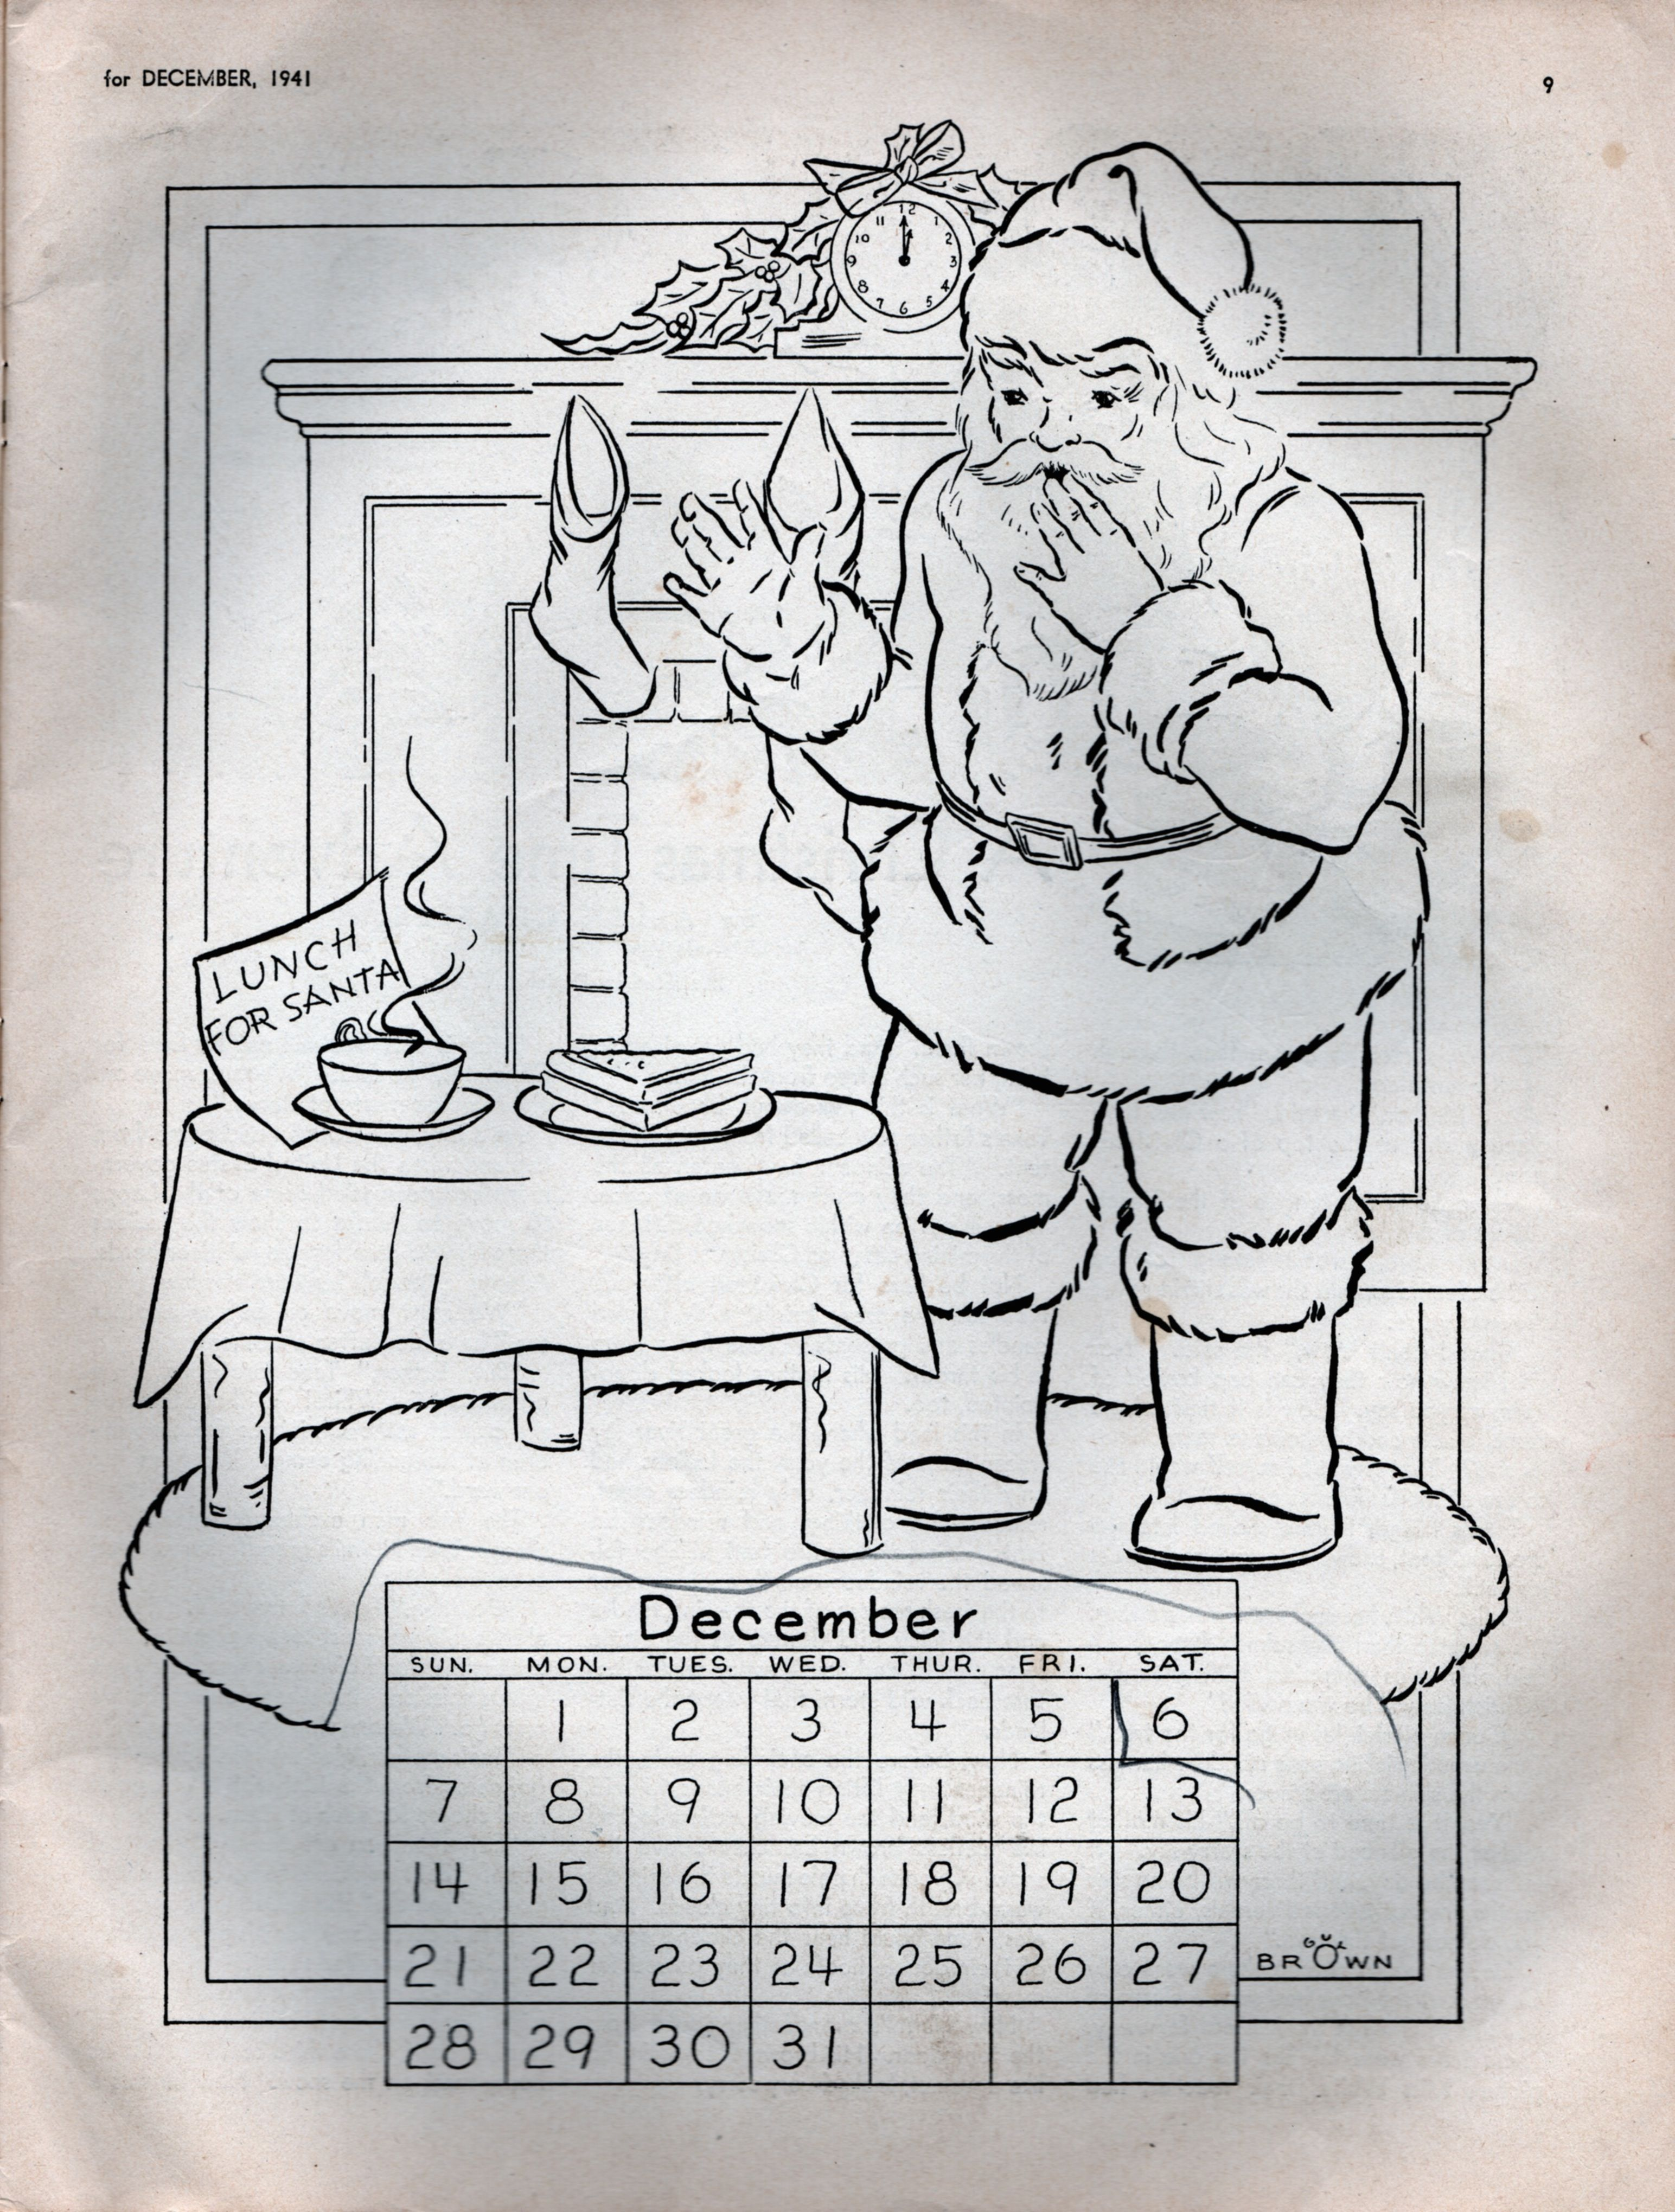 December Calendar Art : December calendar to color by guy brown from the december